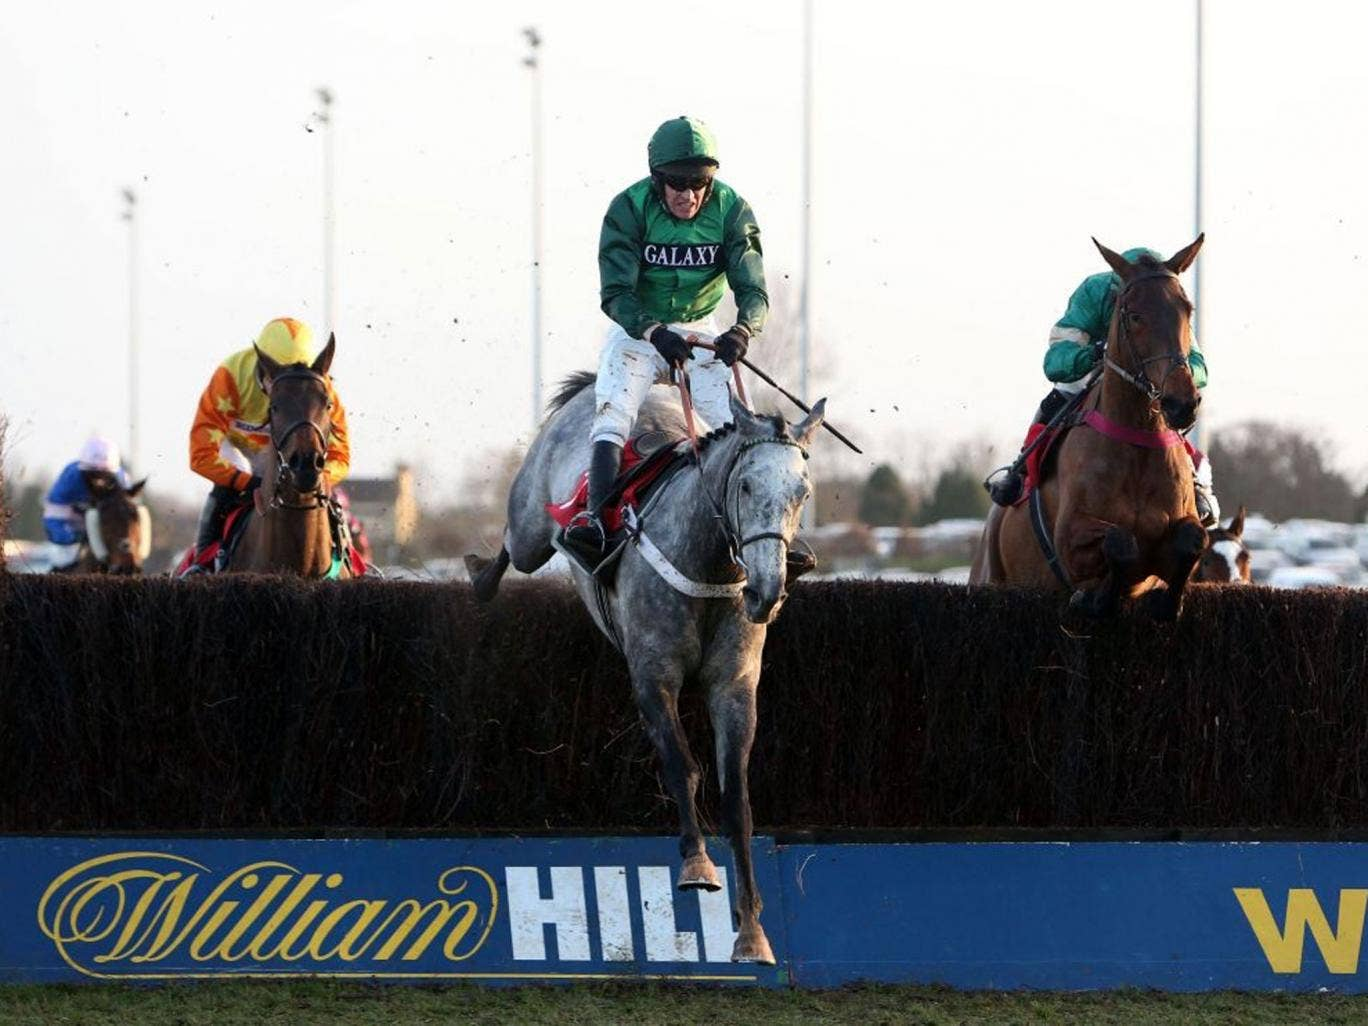 One to watch: William Hill's share price is expected to recover in 2014